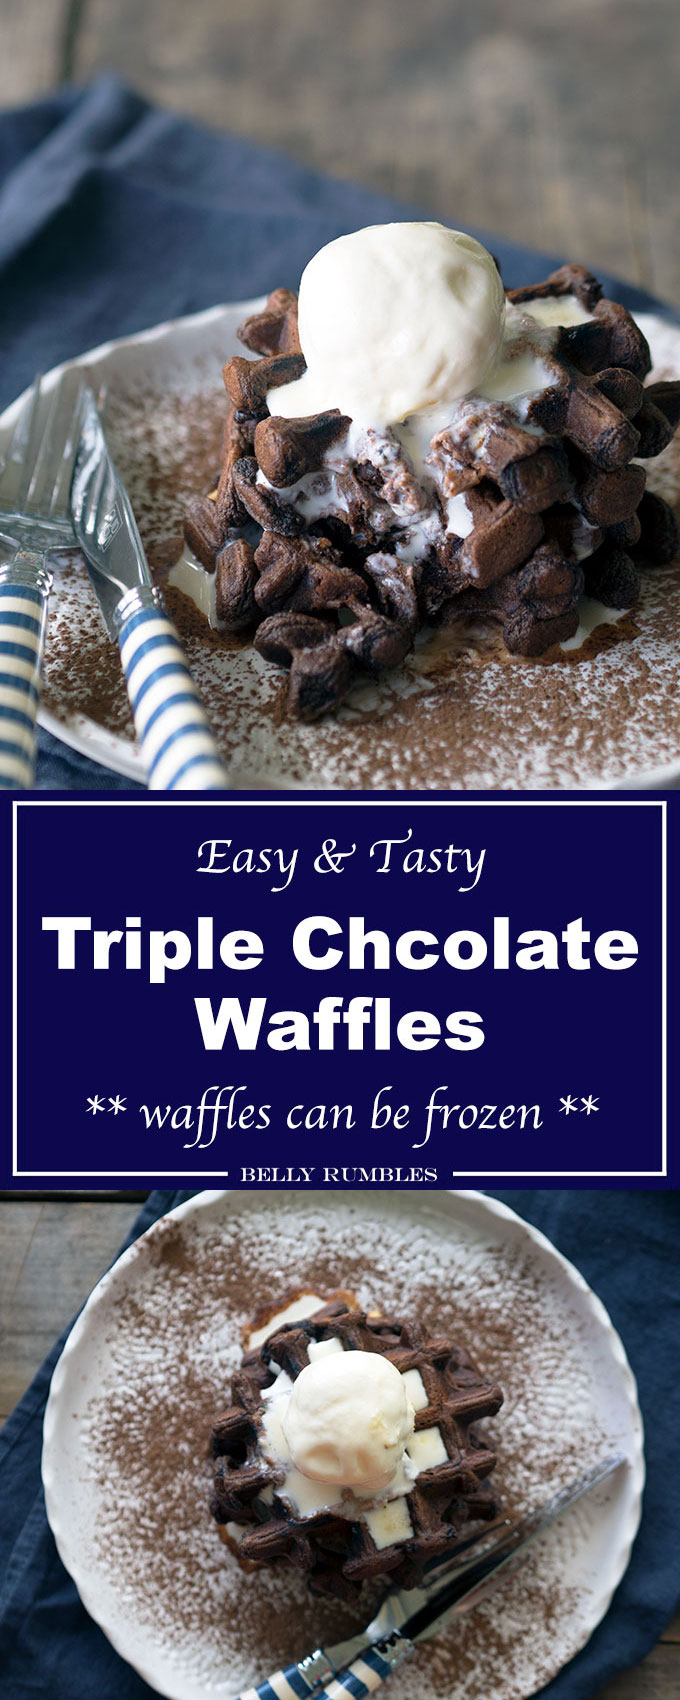 The best triple chocolate waffles recipe you will ever make! Packed with white, milk and dark chocolate, these are great buttermilk waffles for breakfast.